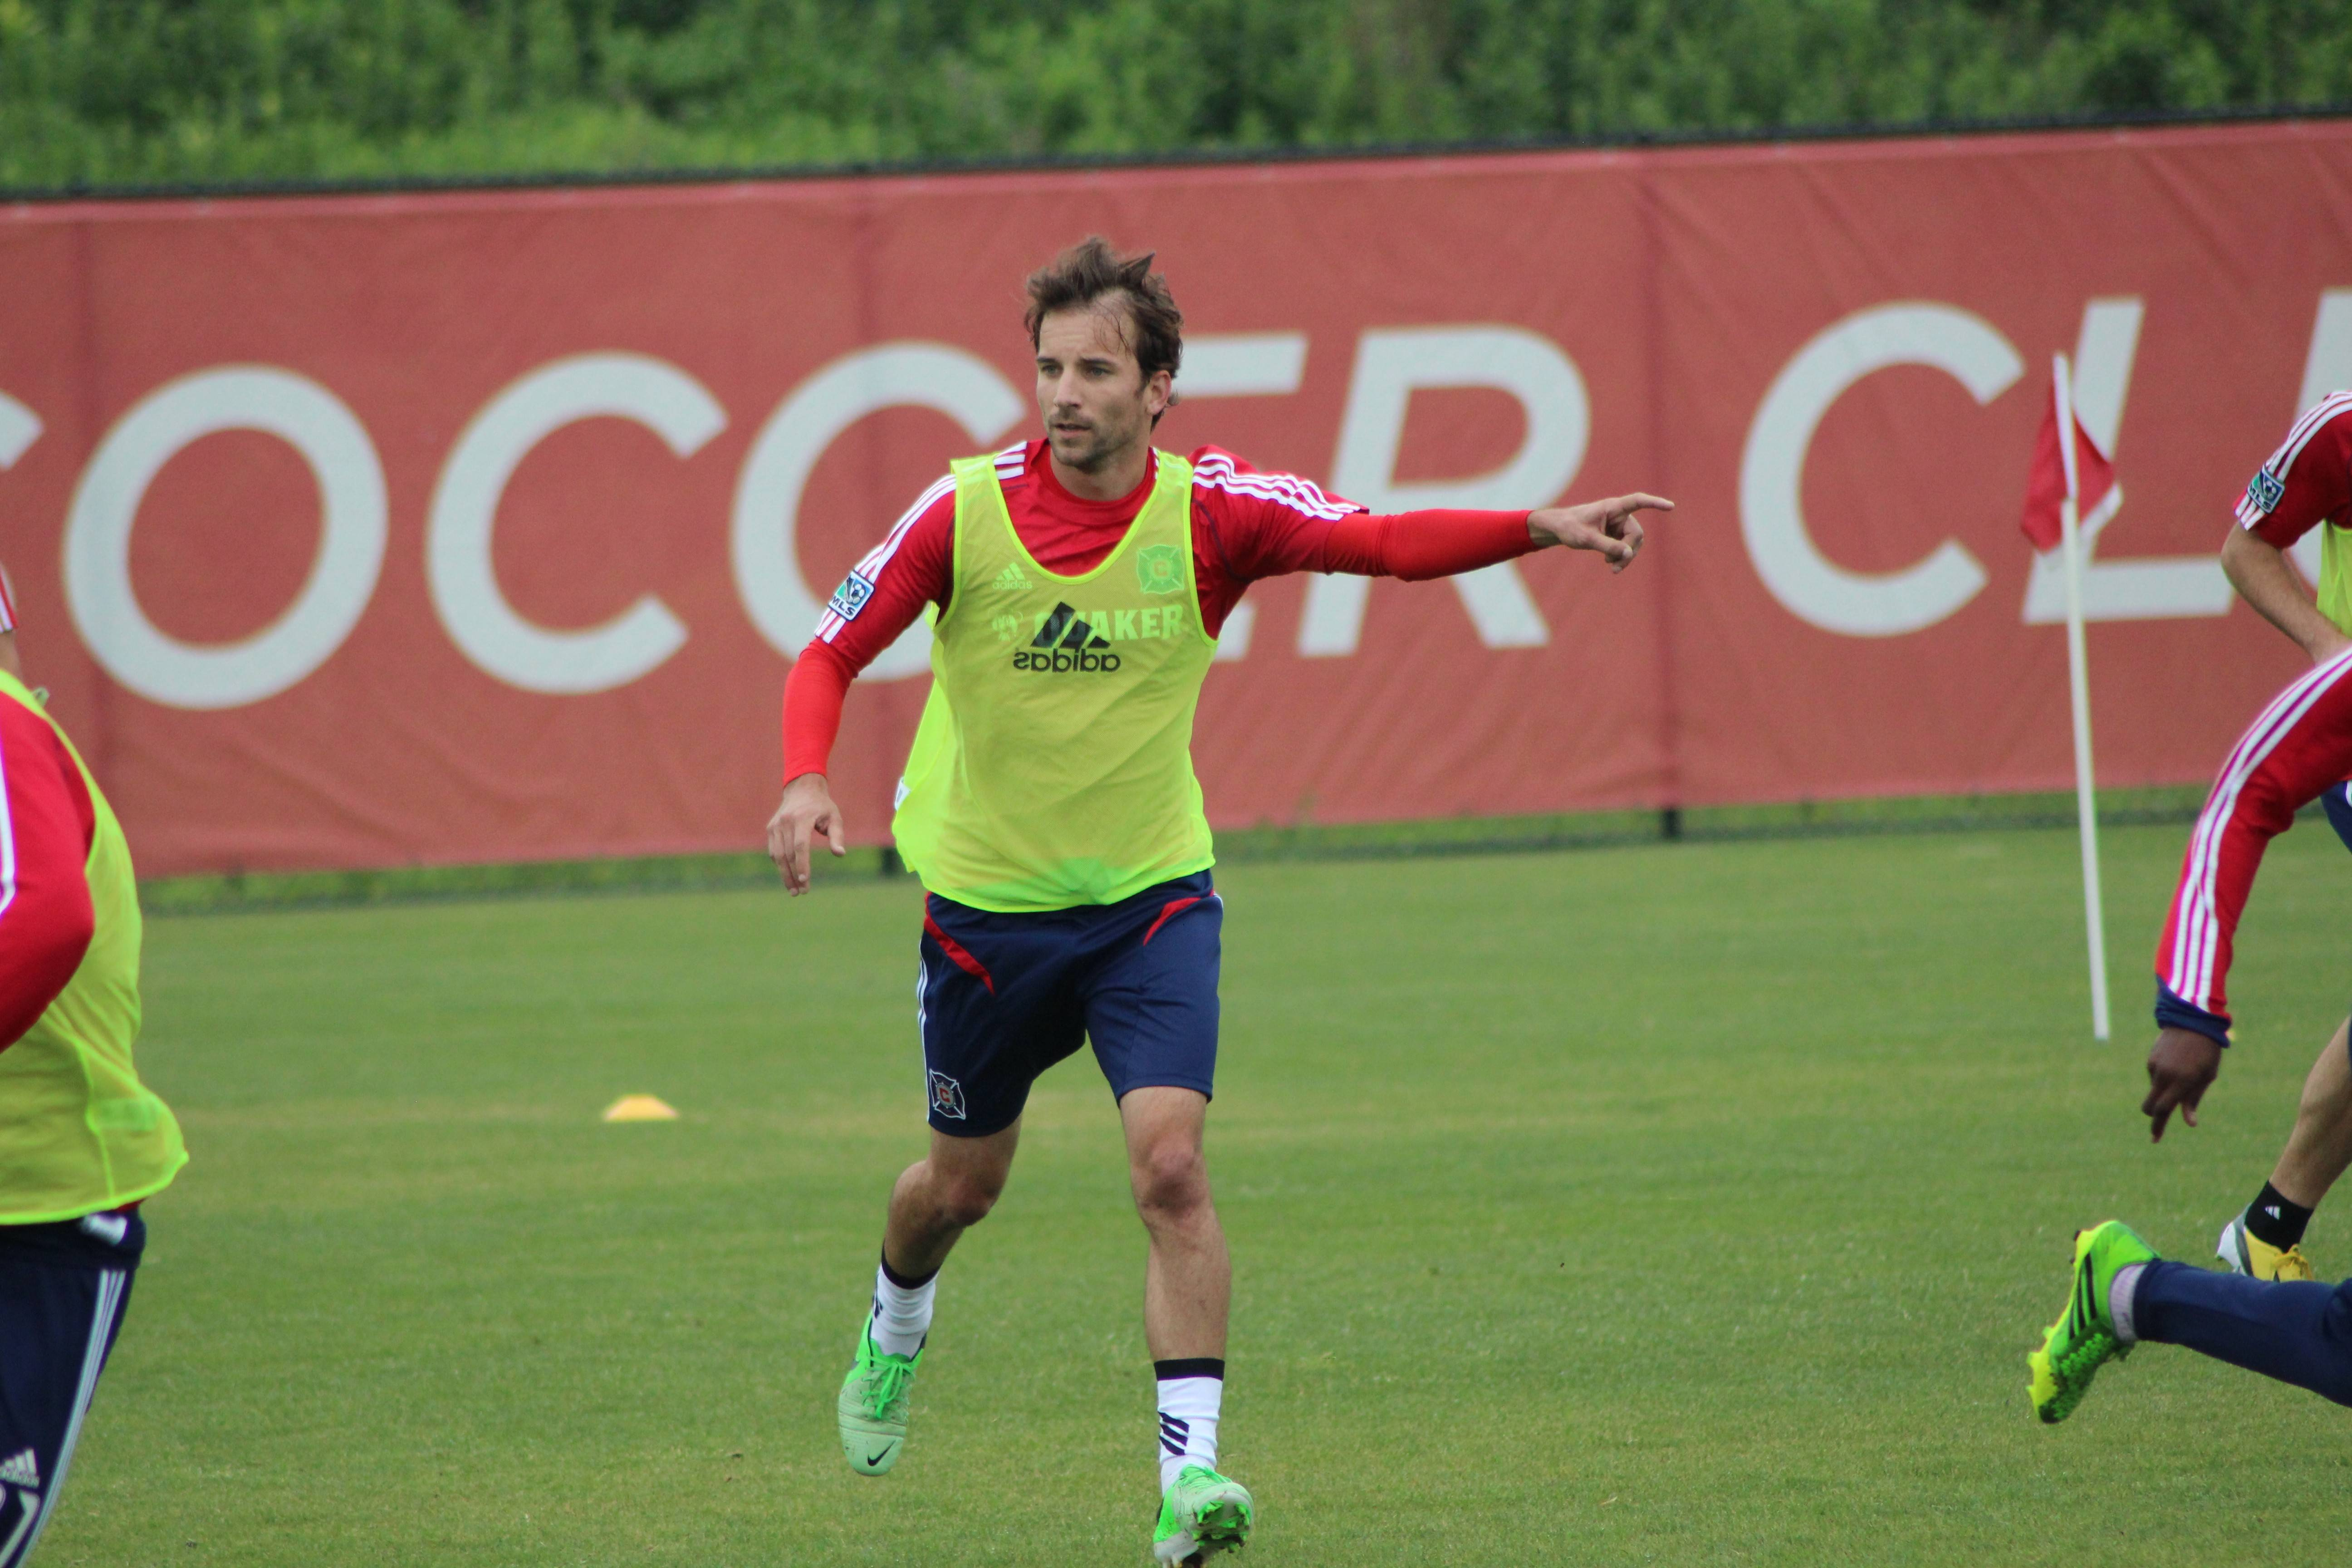 Mike Magee of the Chicago Fire